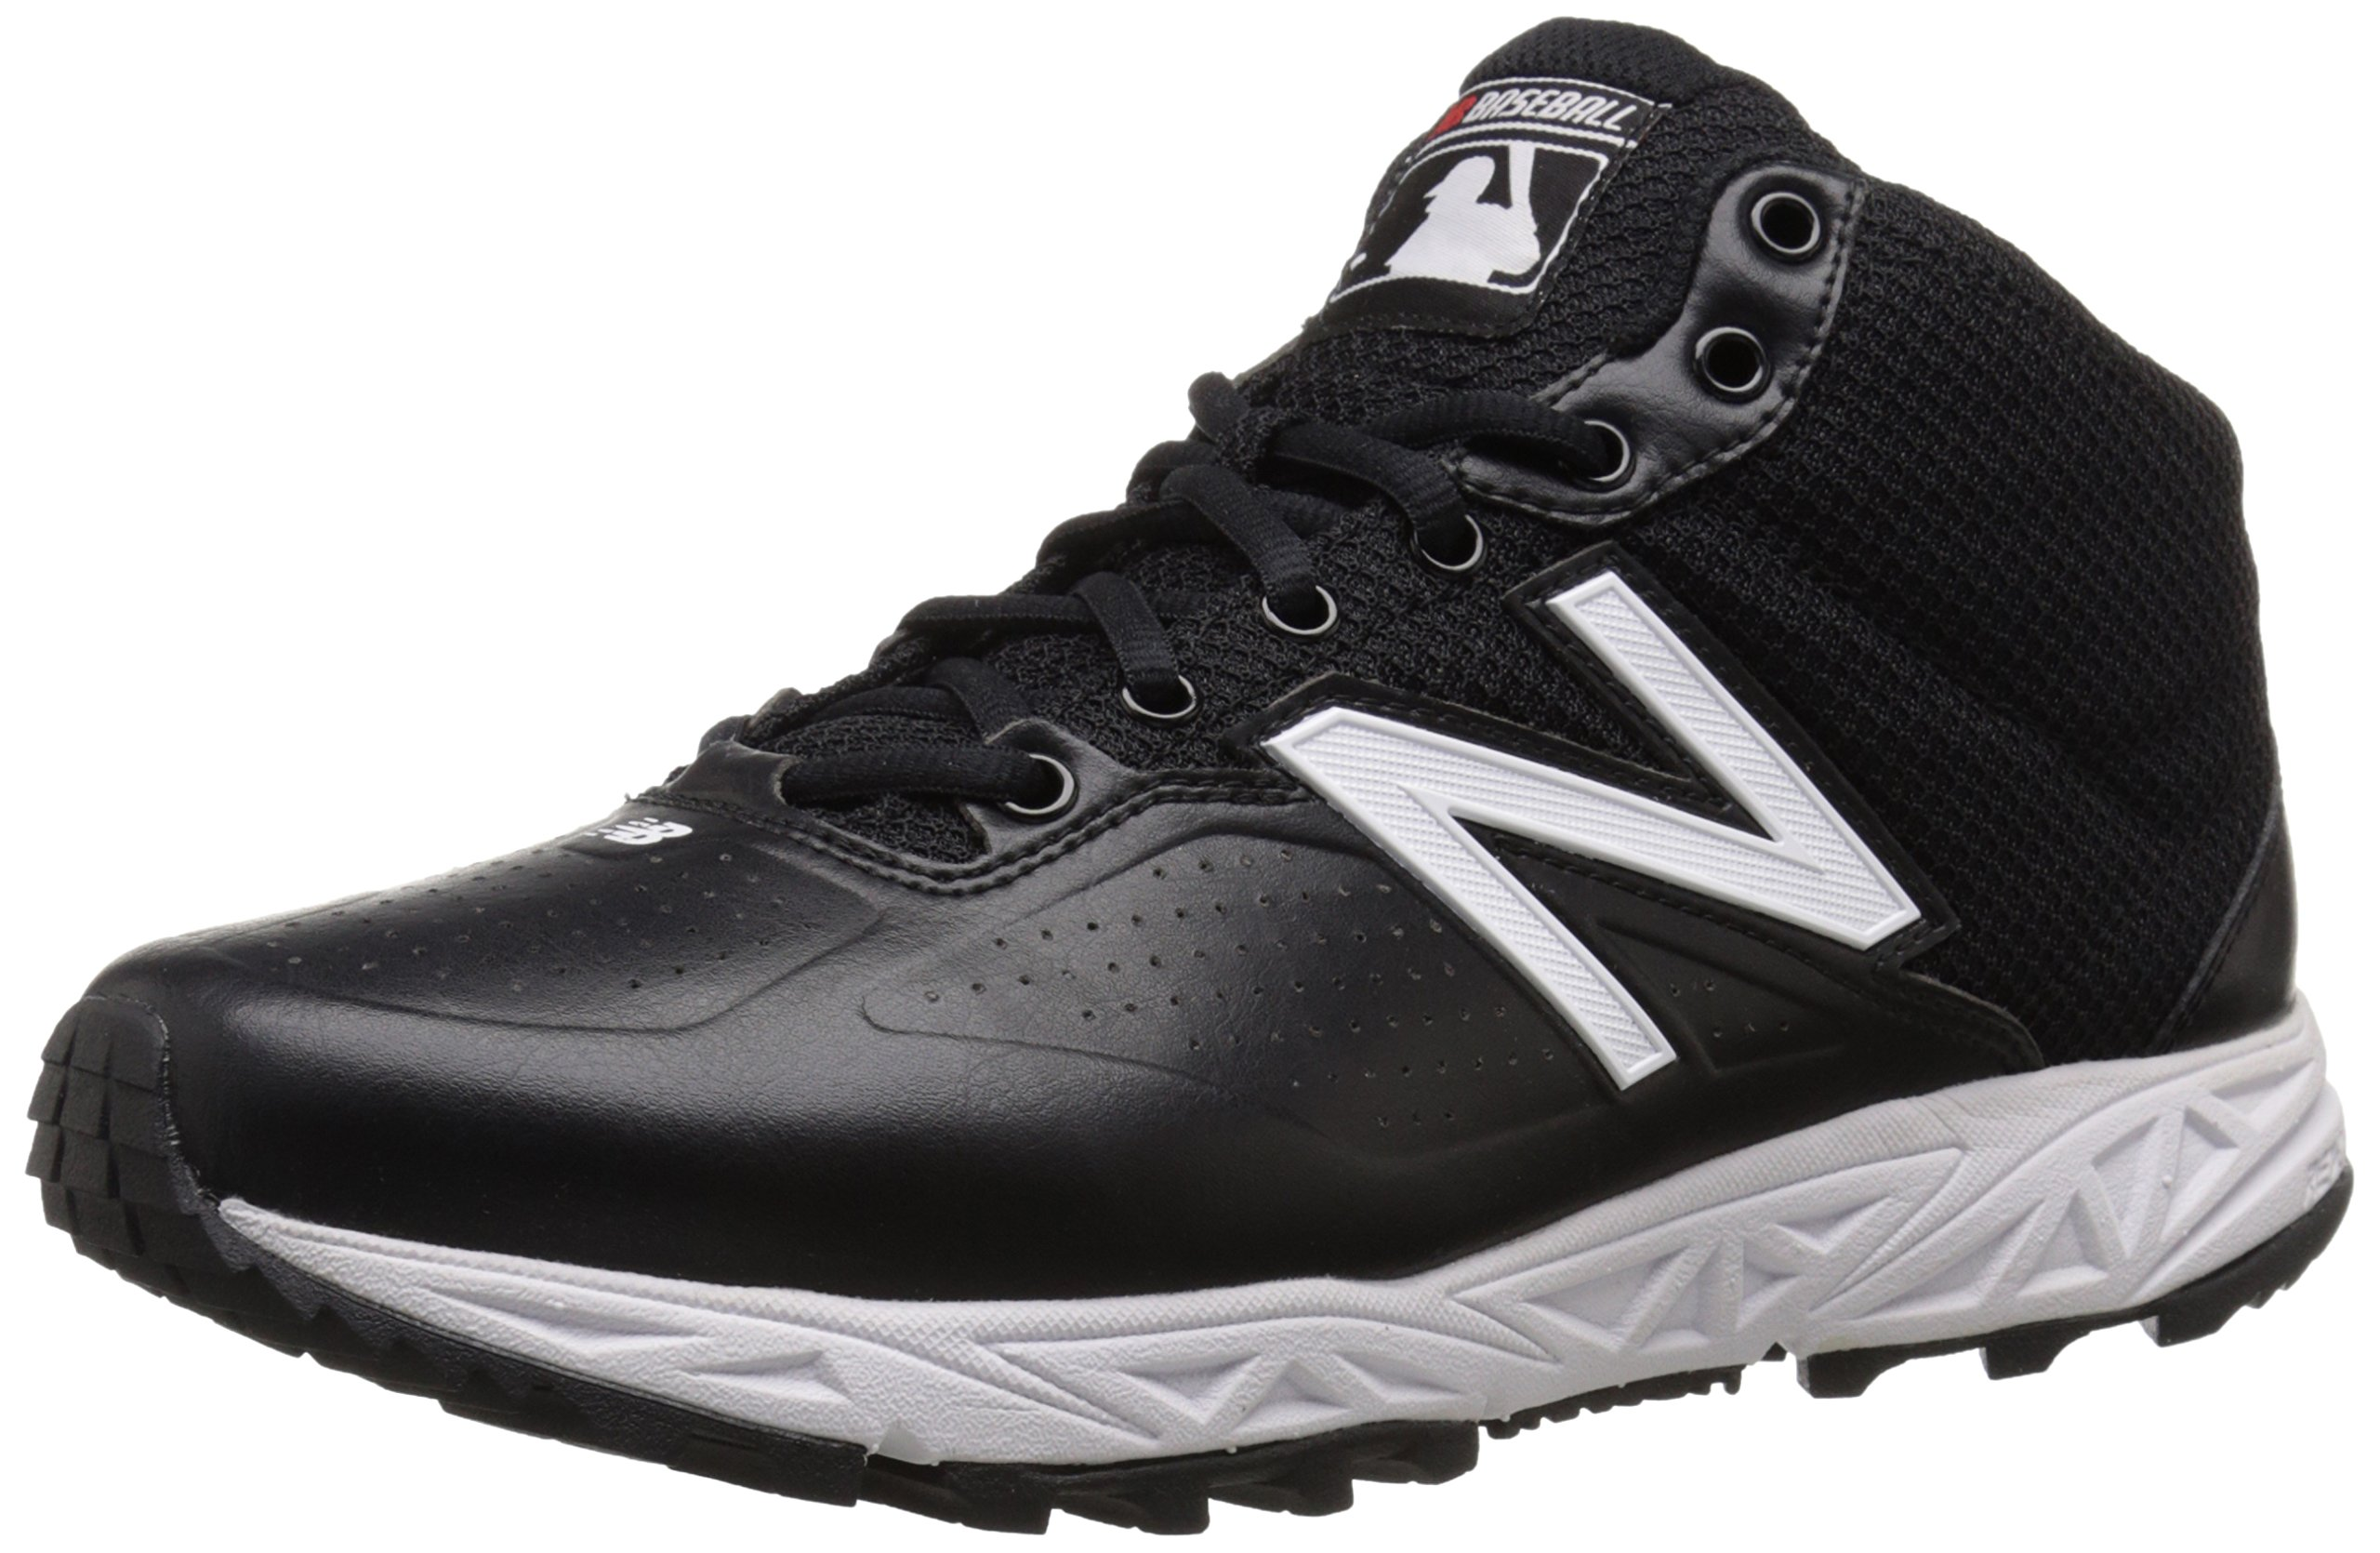 New Balance Men's MU950V2 Umpire Mid Shoe-M, Black/White, 7 D US by New Balance